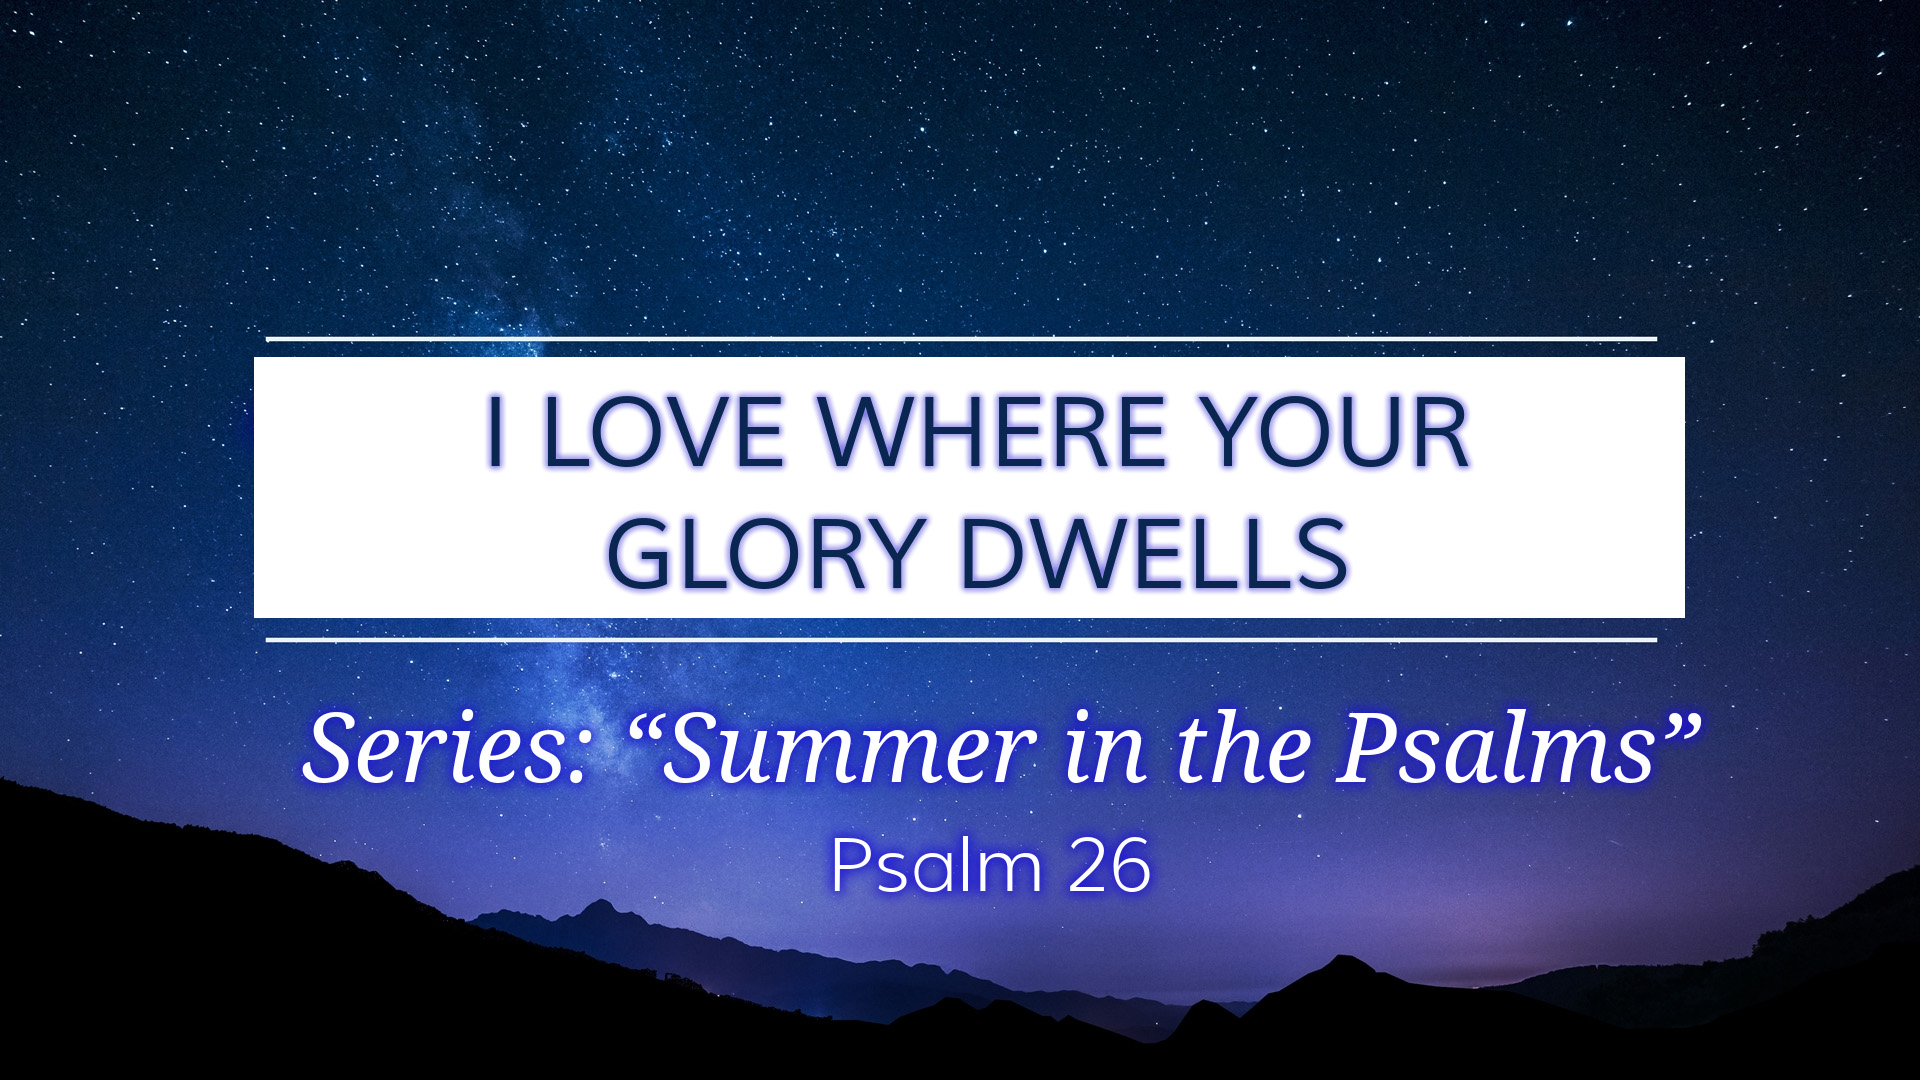 Image for the sermon I Love Where Your Glory Dwells